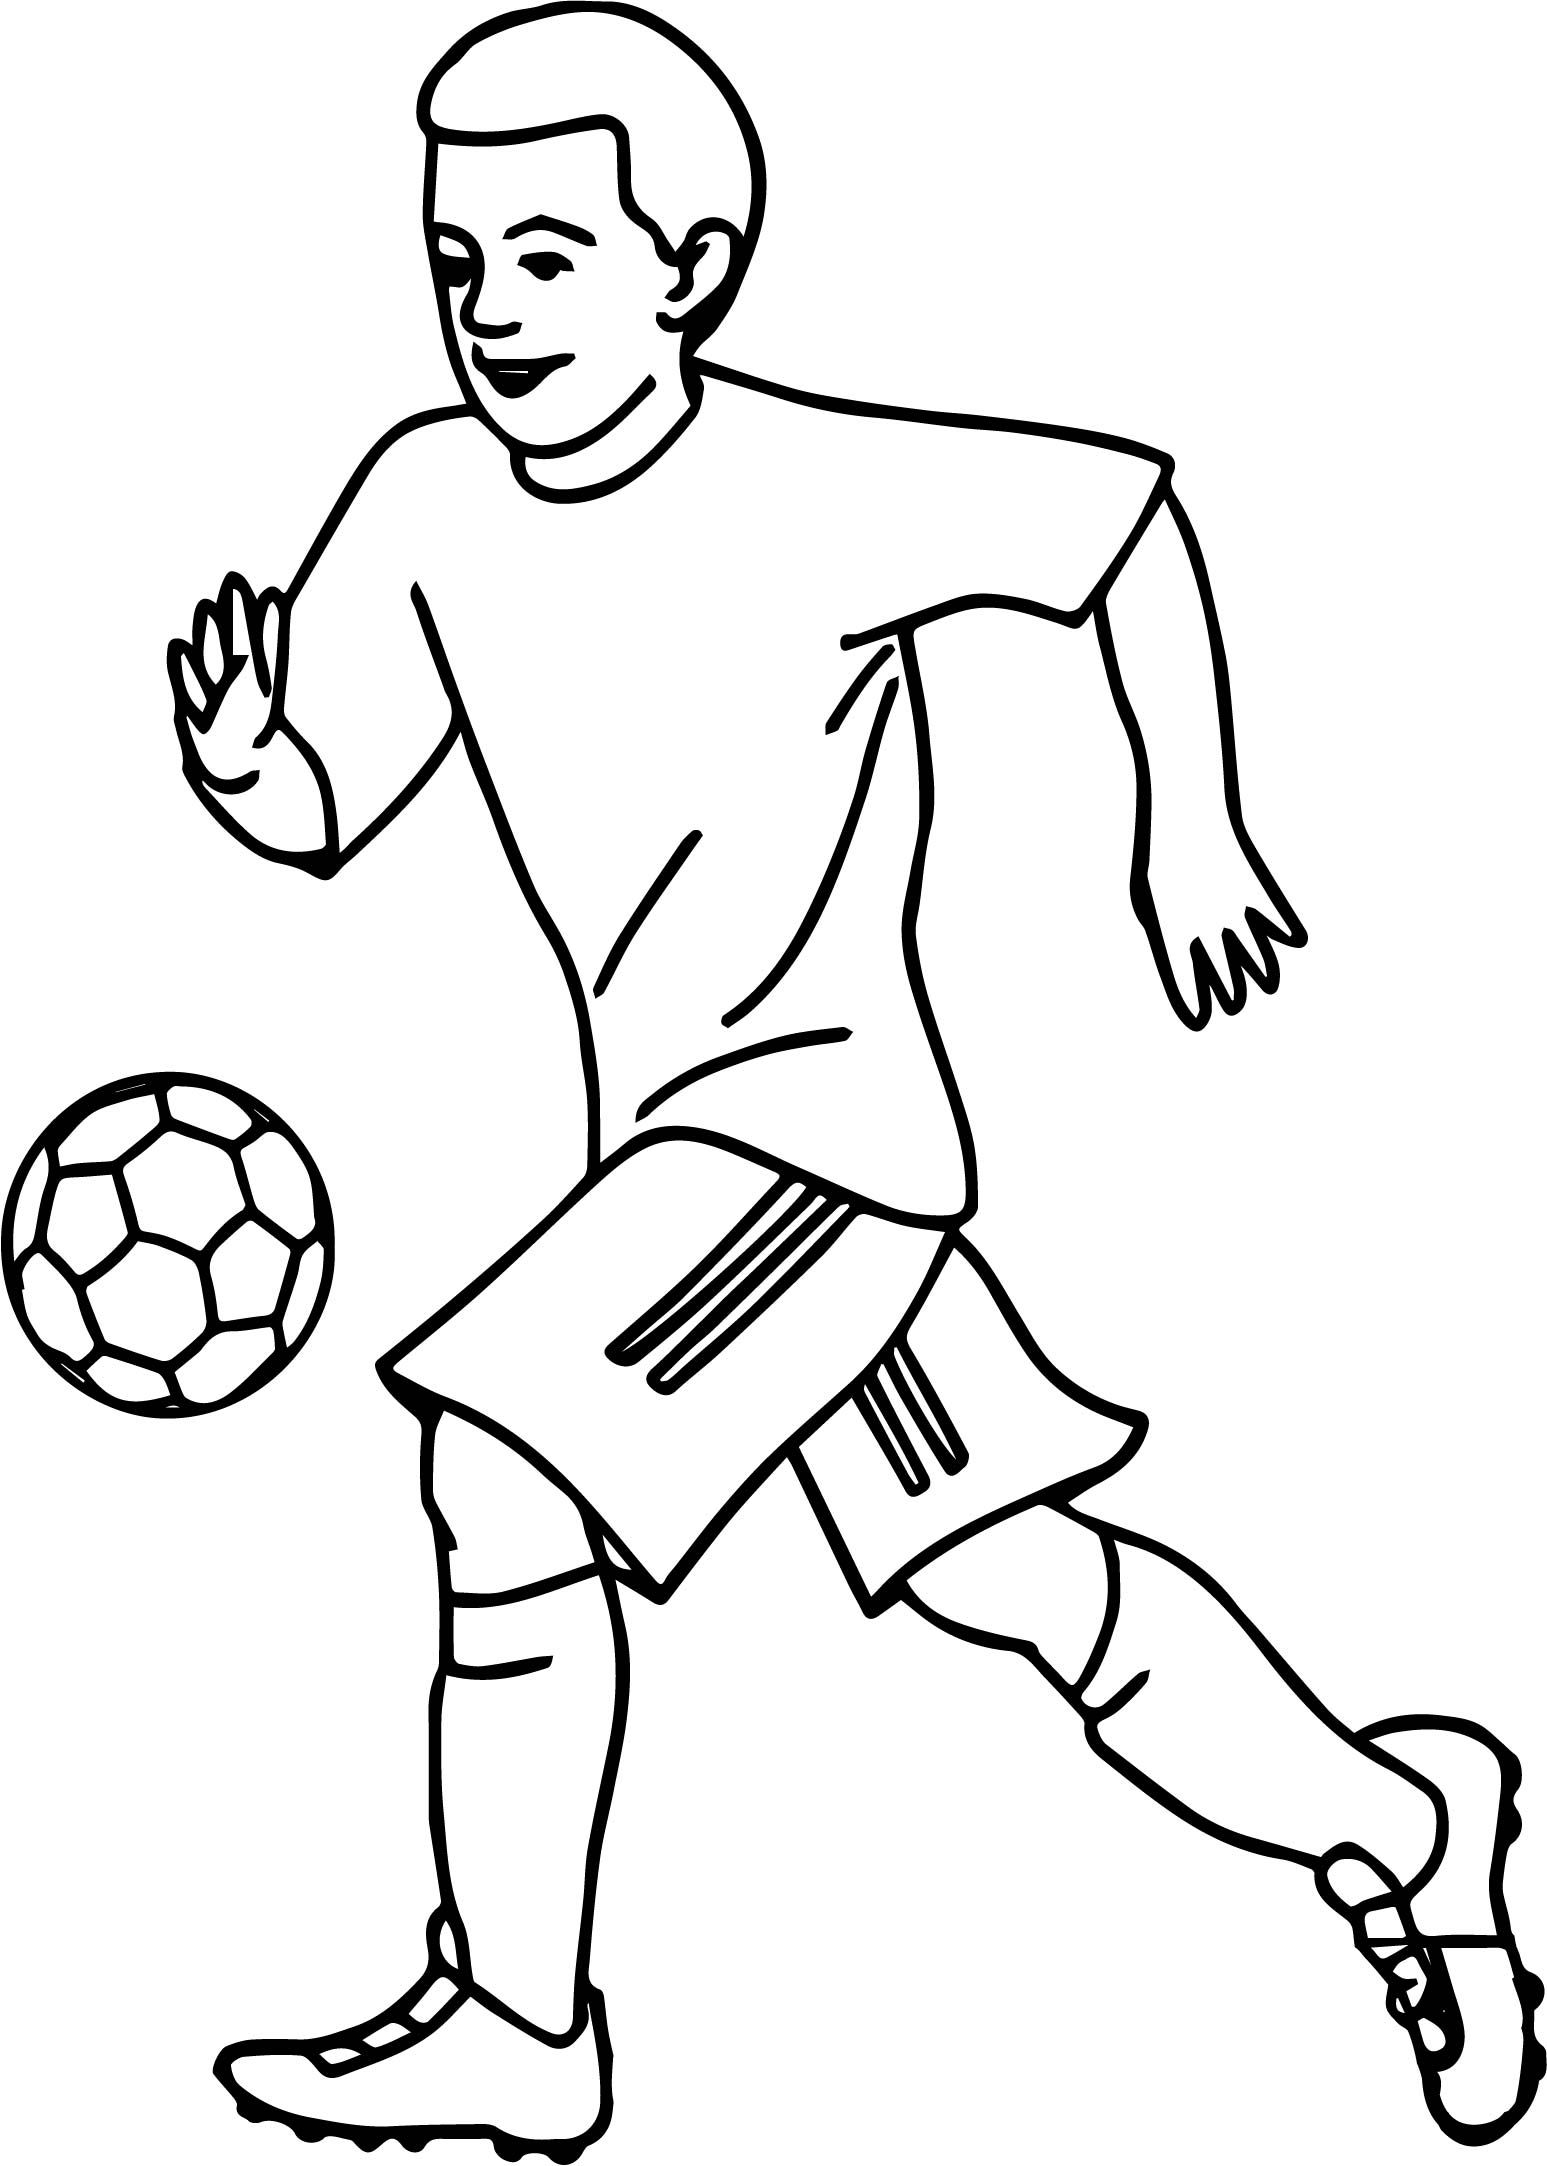 Awesome Soccer Sports Playing Football Coloring Page Football